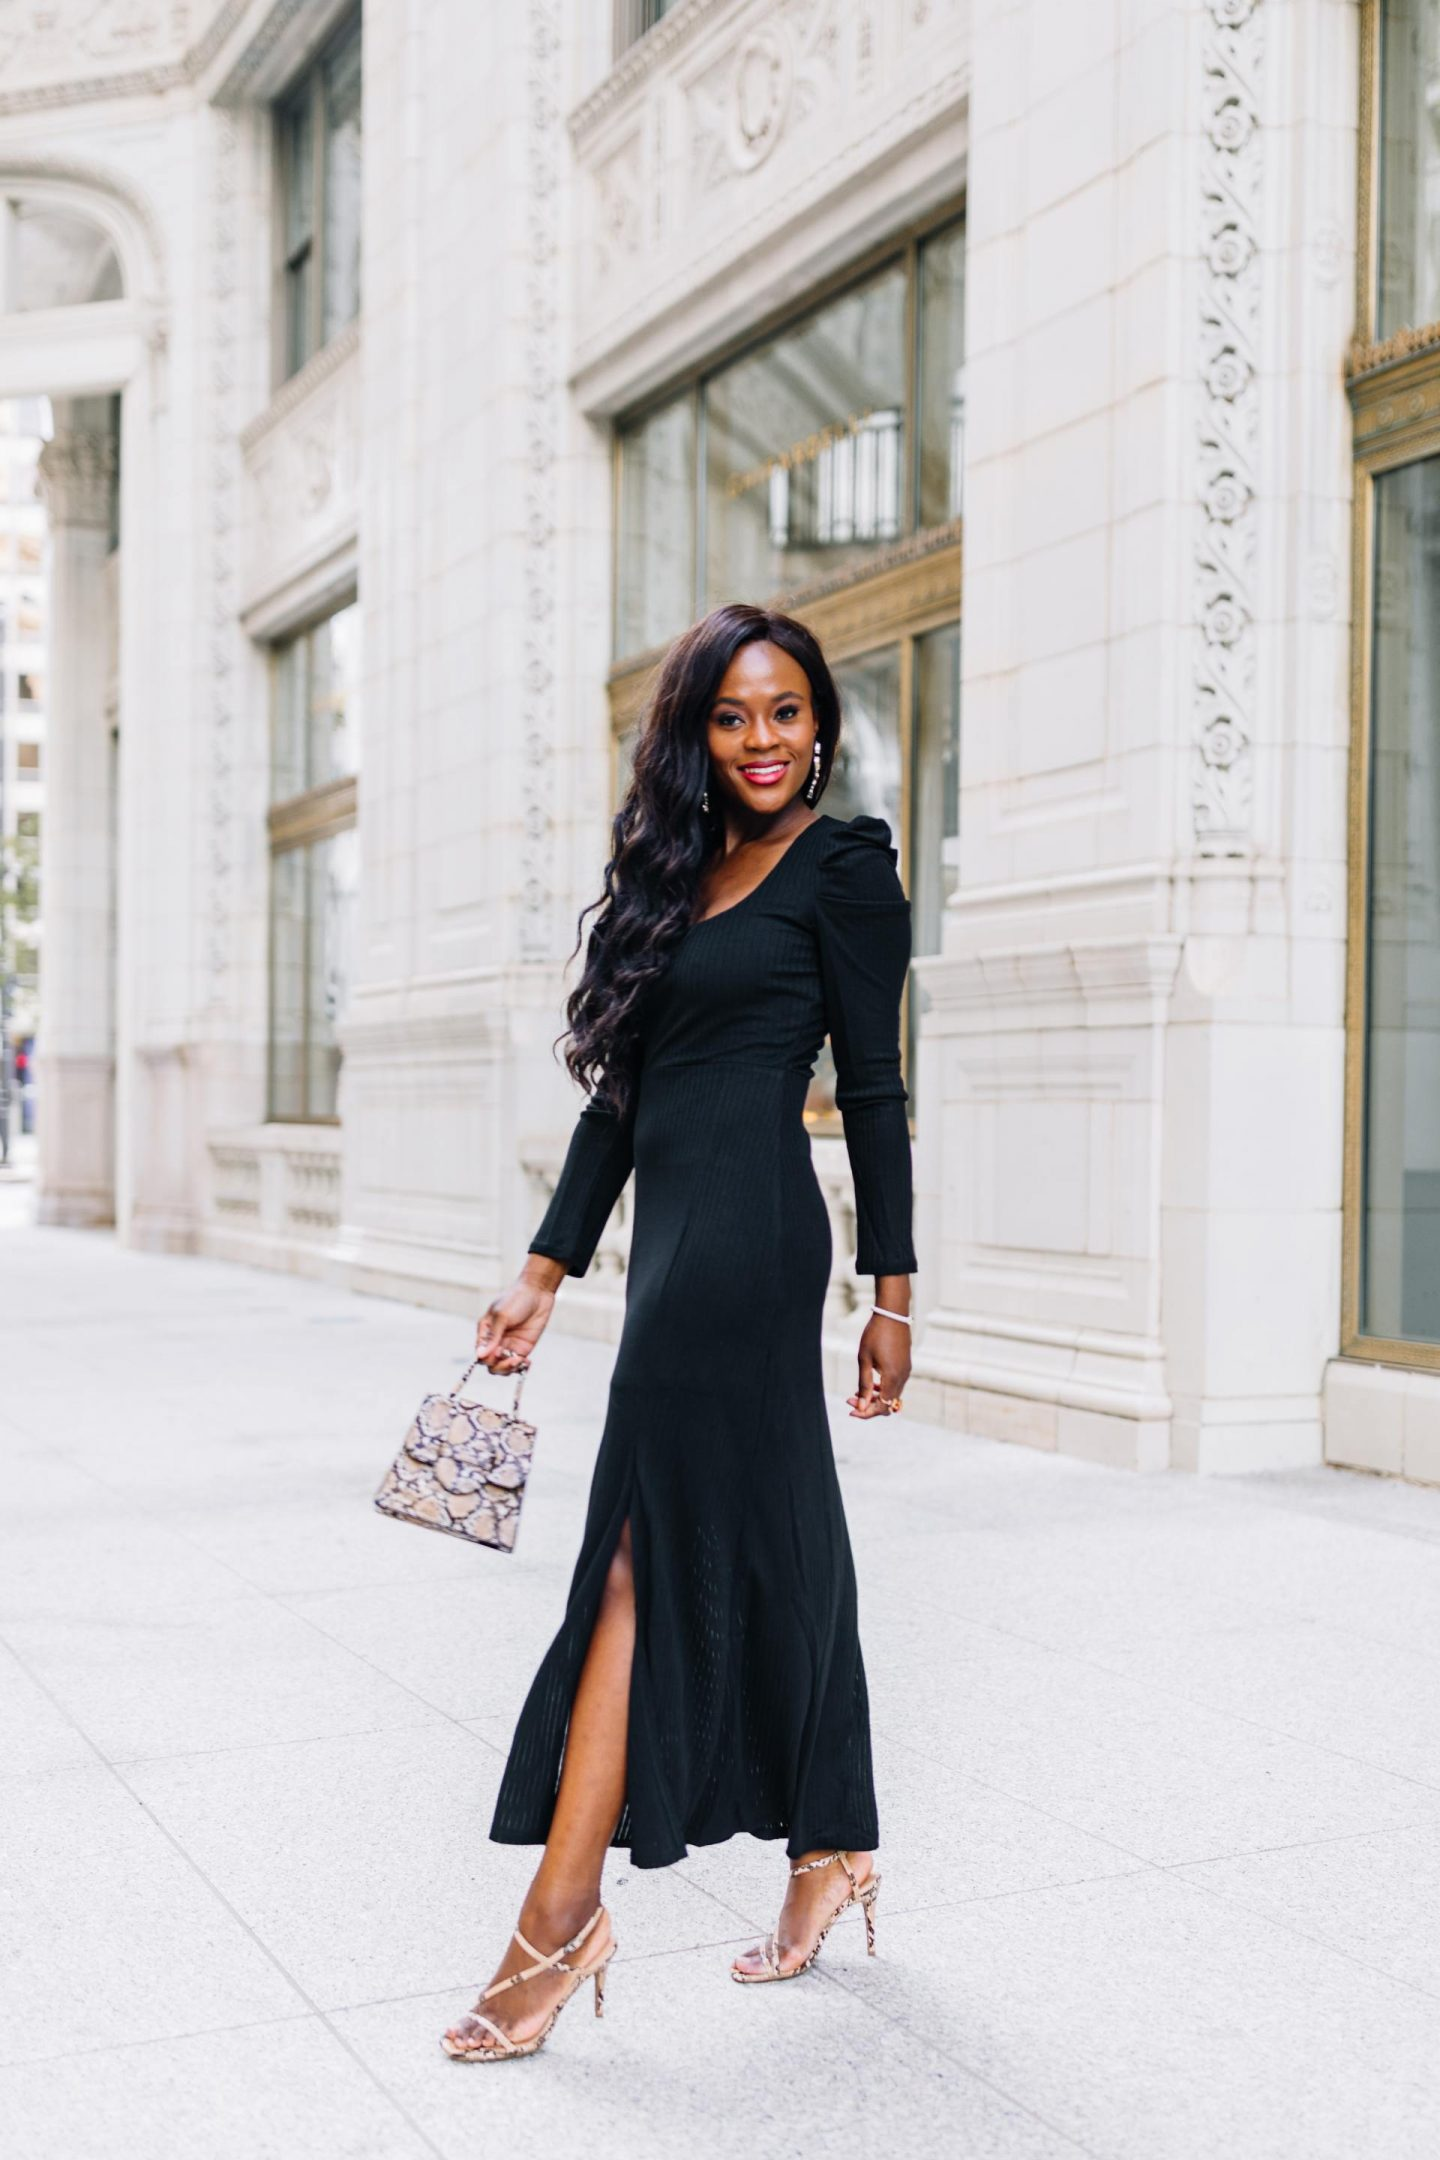 Jenn Ibe, Cranberry Tantrums, How to wear a sweater dress for fall